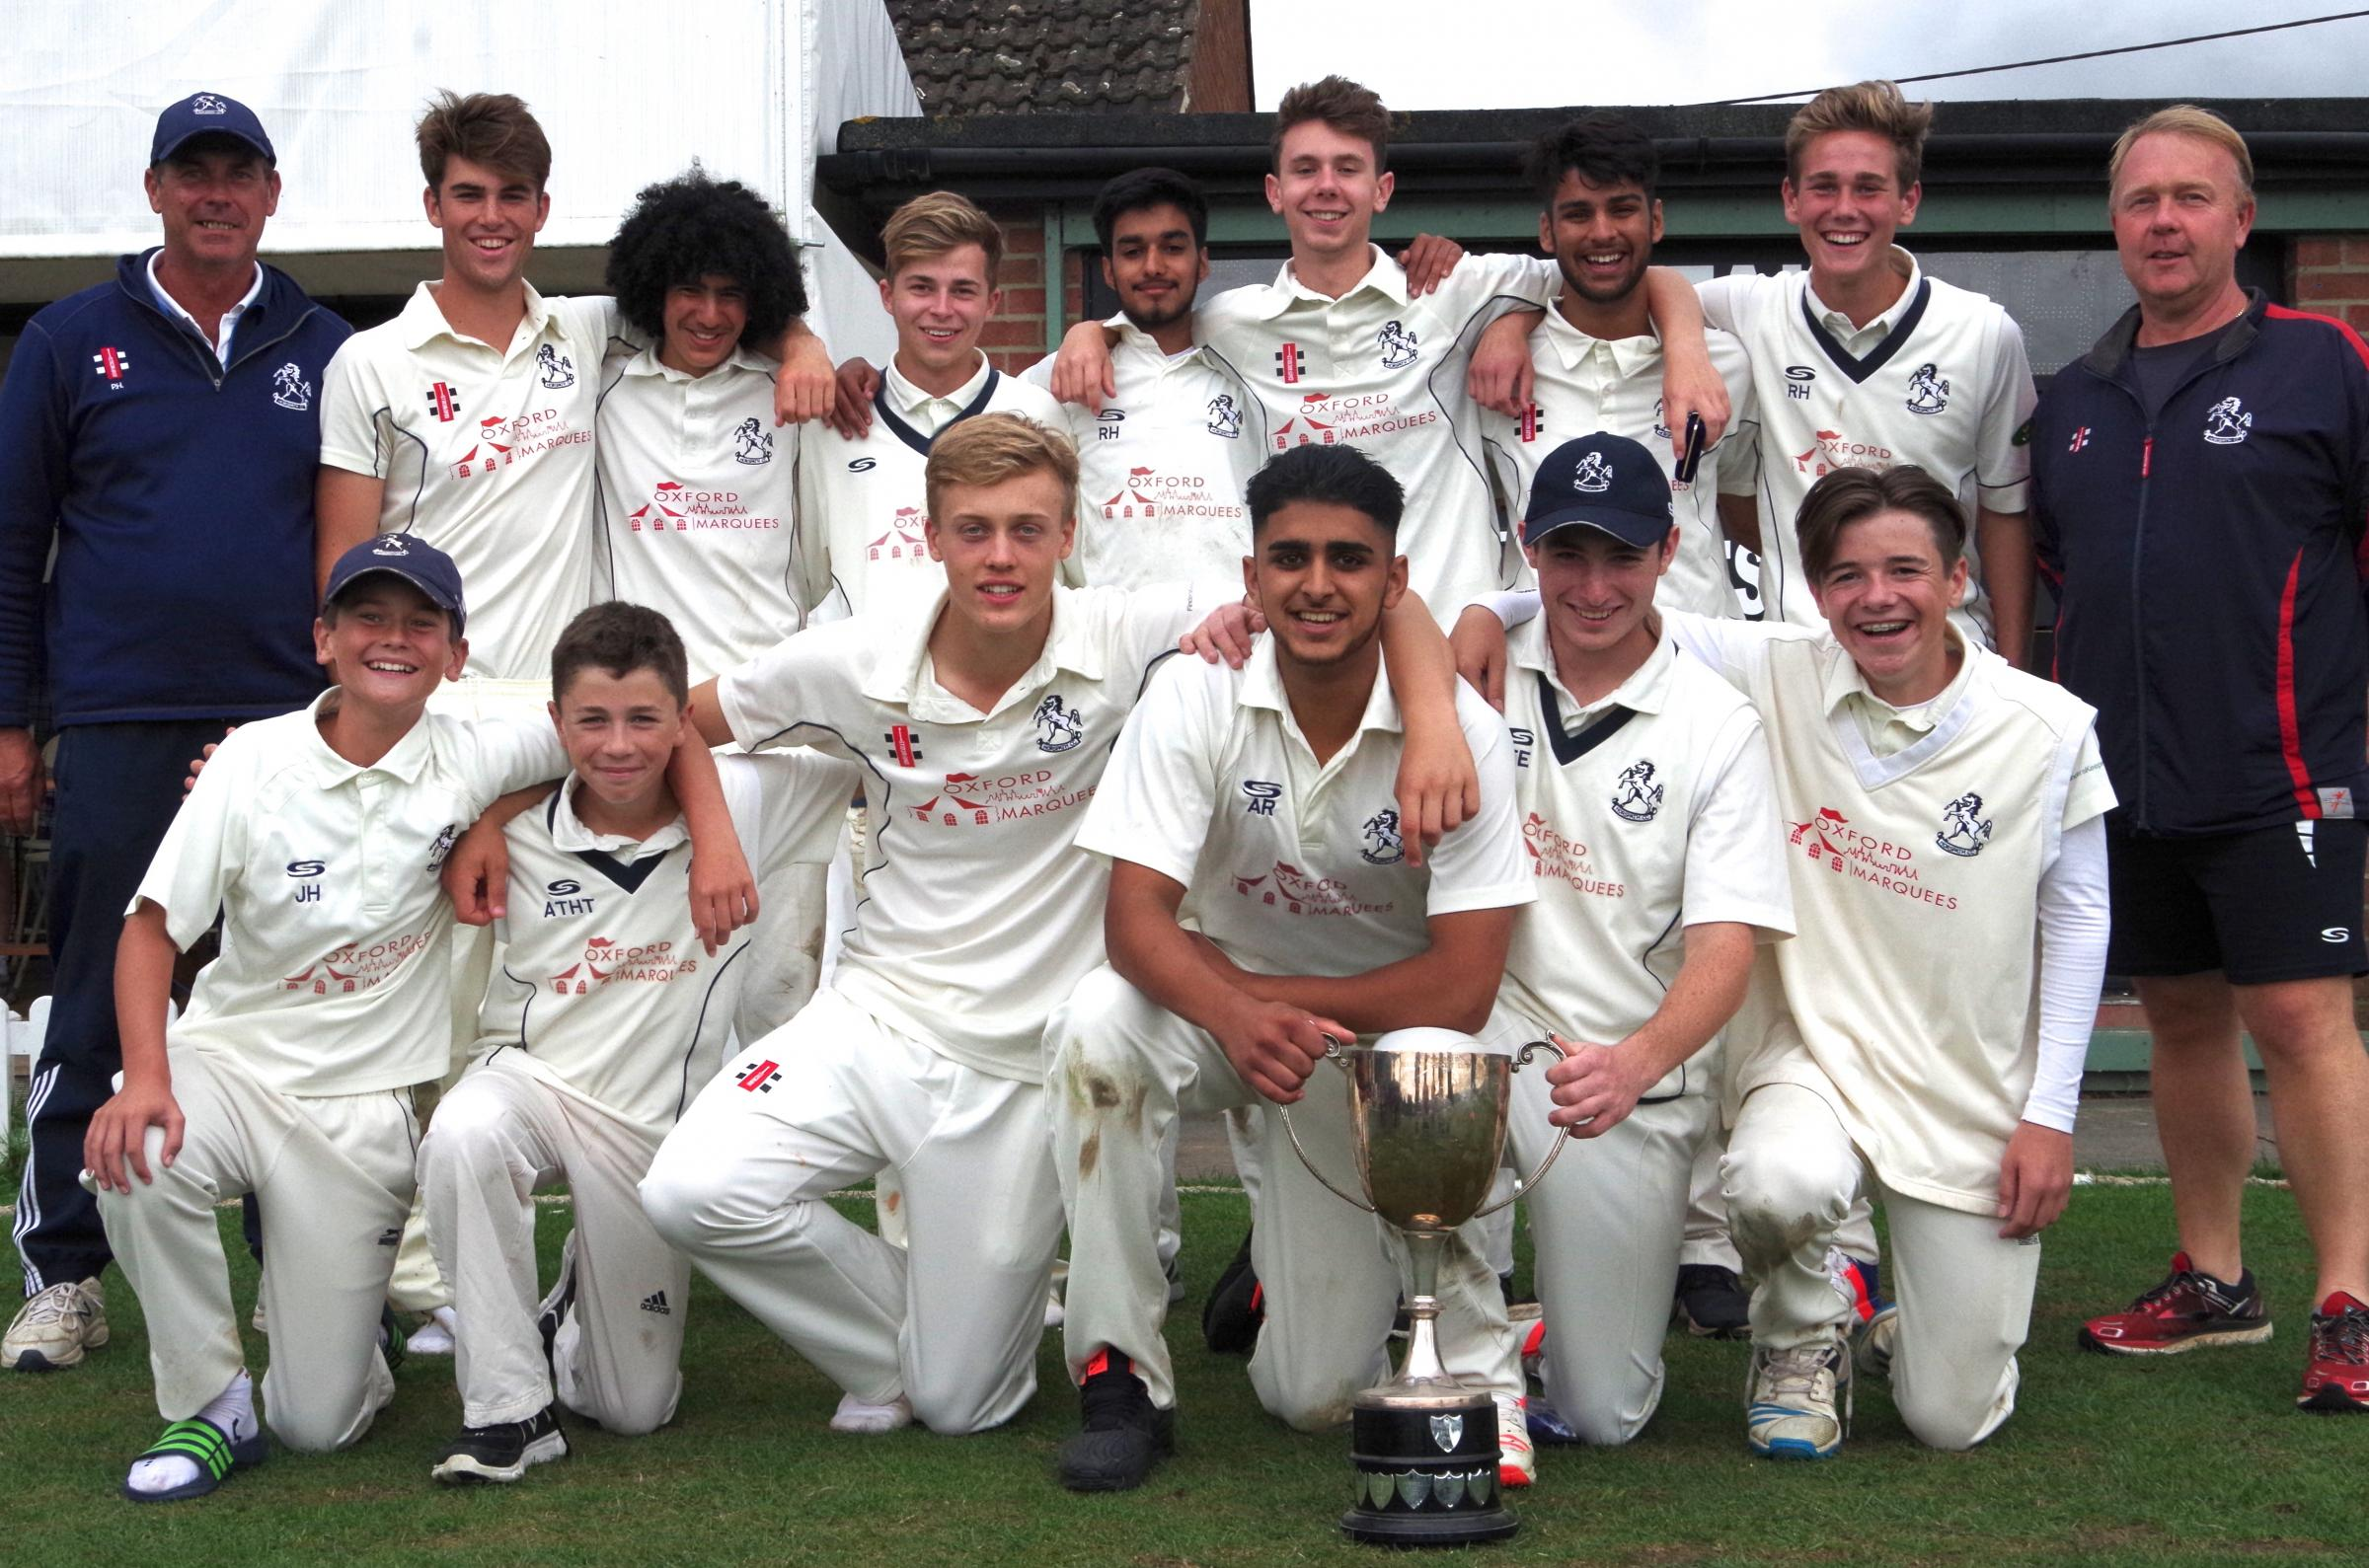 Horspath with the 'stand-in' trophy after winning the Oxfordshire Under 17 League. Back row (from left): Paul Hicks (assistant manager), Max Smith, Jahan Swain, Lloyd Belcher, Adeel Rehman, Jamie Wells, Charan Chahal, Ryan Hicks, Chris Jones (manager)